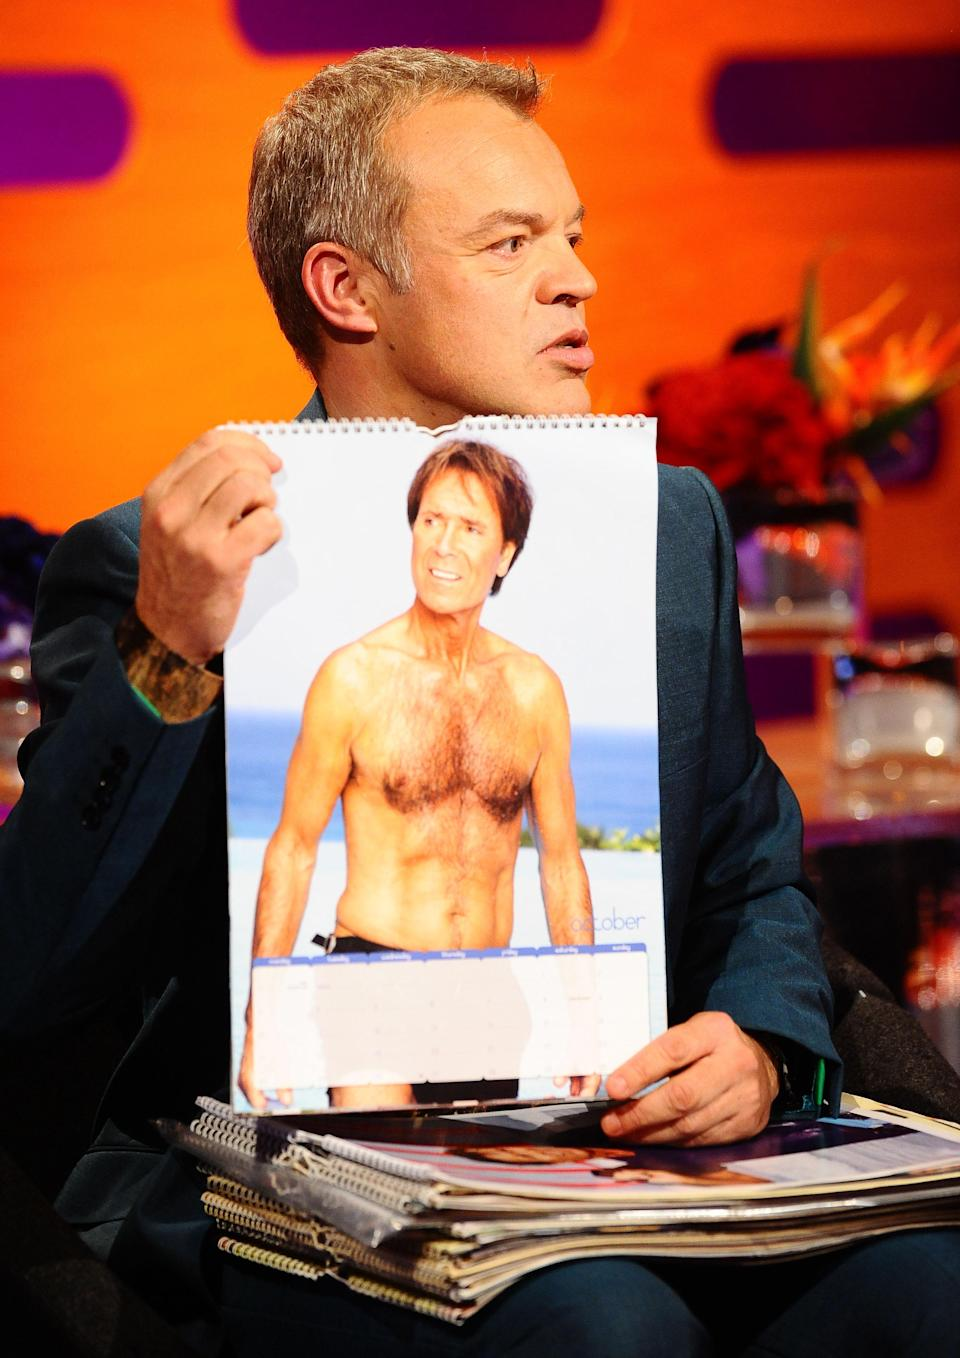 Presenter Graham Norton holds up a calendar featuring guest Sir Cliff Richard during the filming of the Graham Norton Show at The London Studios, south London, to be aired on BBC One on Friday evening.   (Photo by Ian West/PA Images via Getty Images)